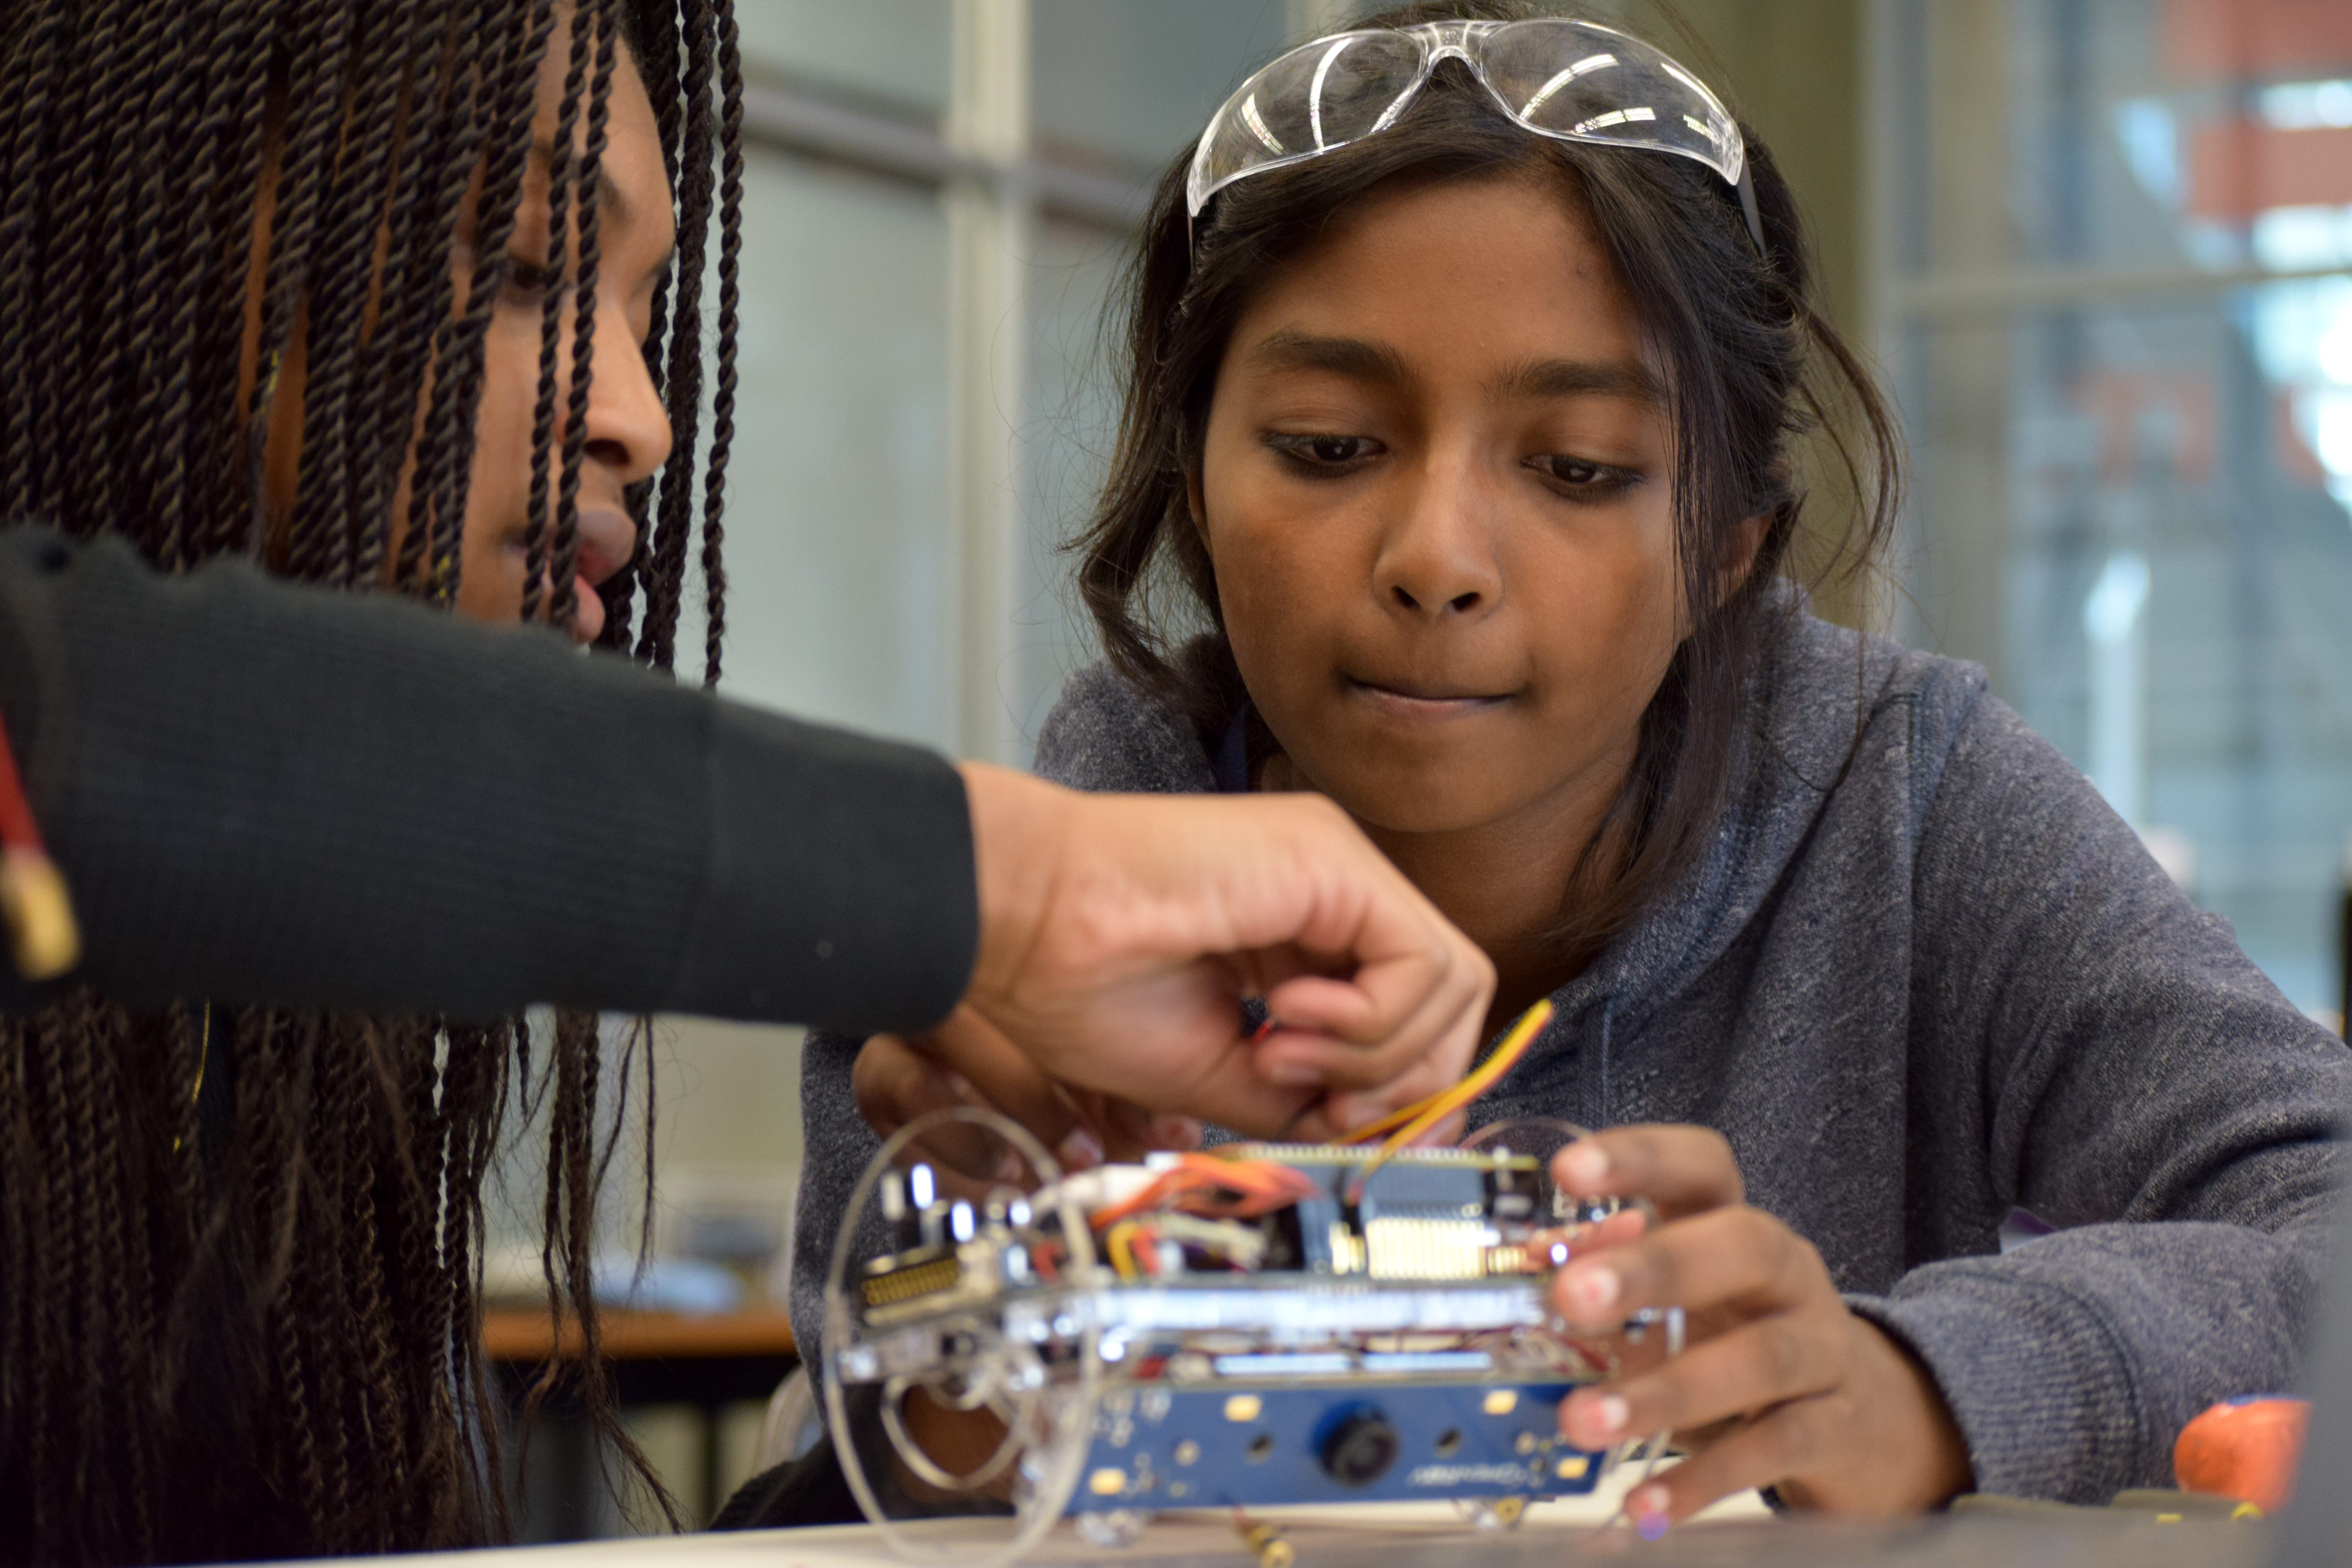 Two girls working on building a robot